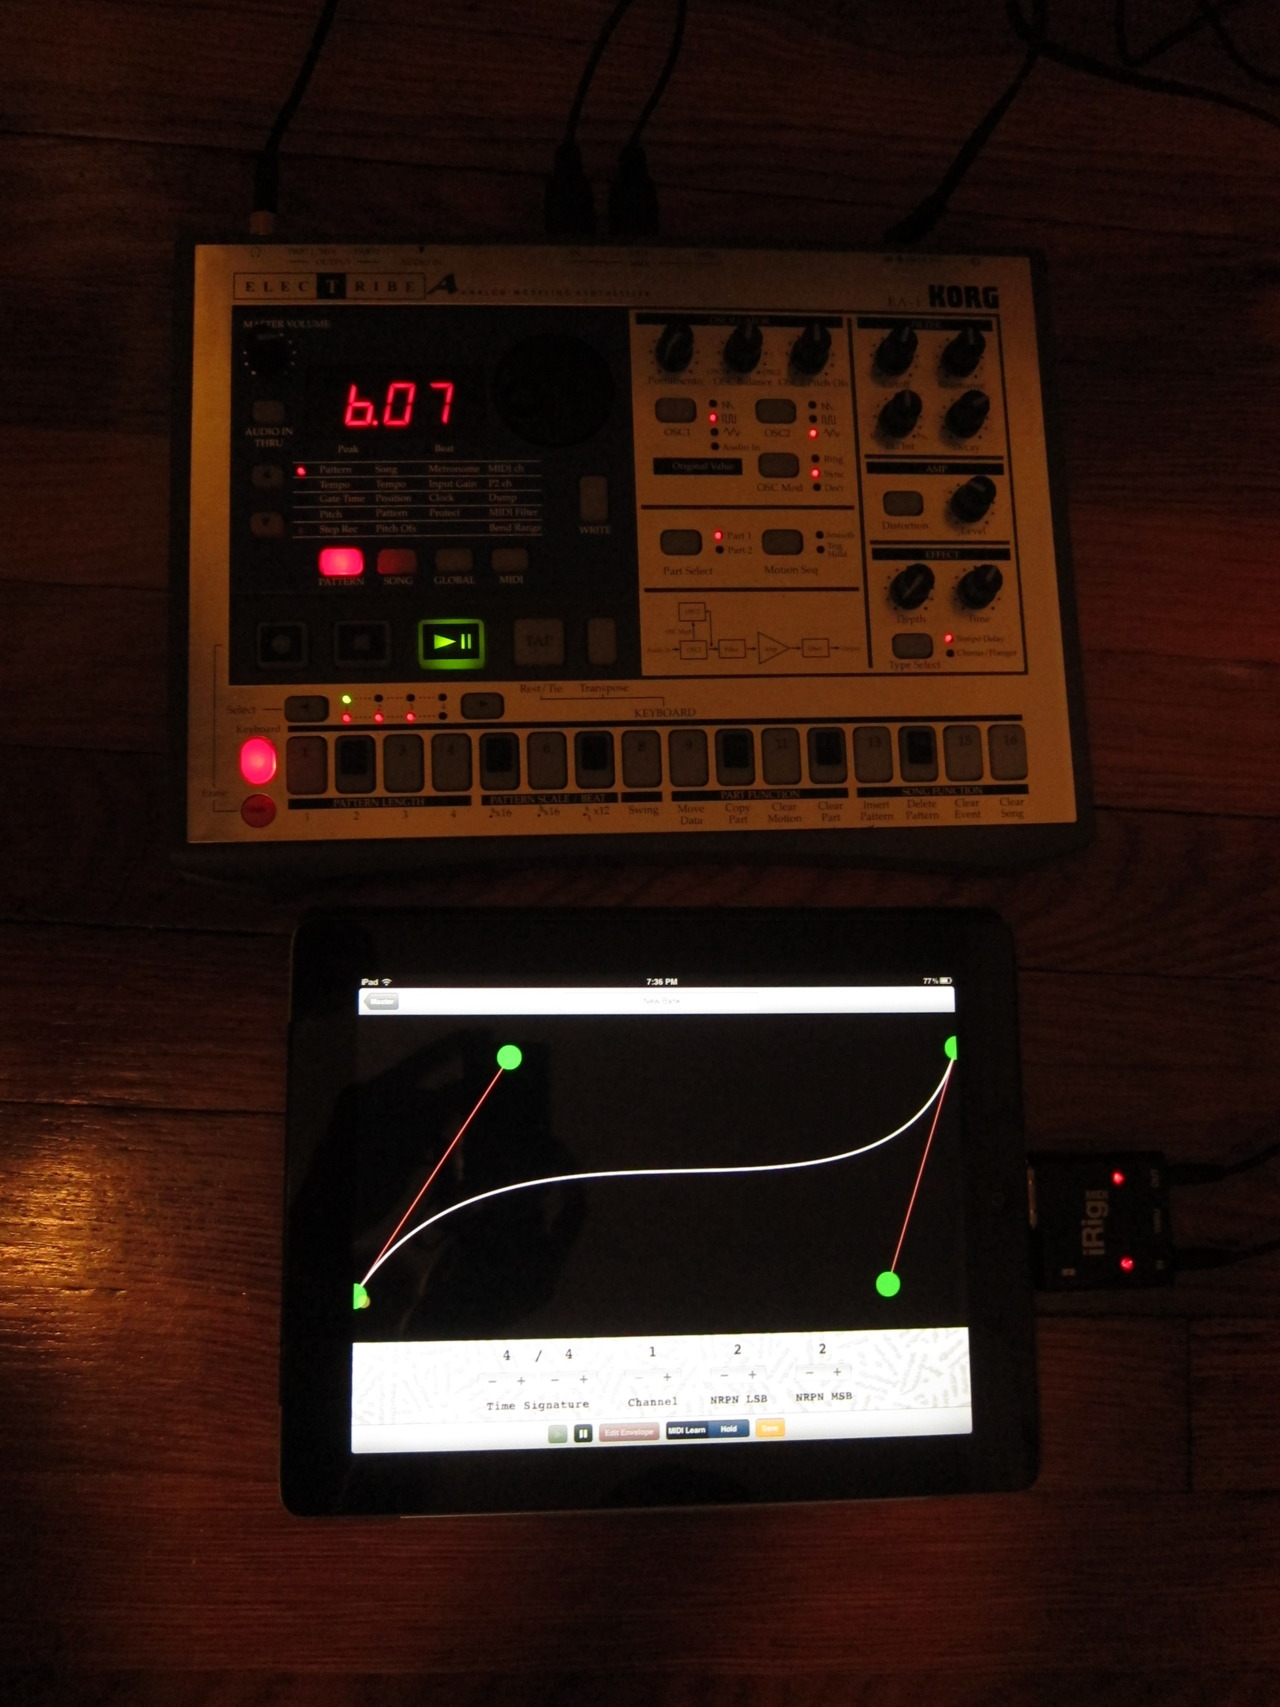 archive-chrislatina:  I built a MIDI function generator for the iOS. It overrides assignable NRPN signals (for older synths and drum machines like the EA-1 pictured) and applies looped envelopes from the touch-controlled cubic Hermite spline. Patches can be saved and edited and multiple patches can run simultaneously, applying the functions to multiple parameters on the synth at the same time.